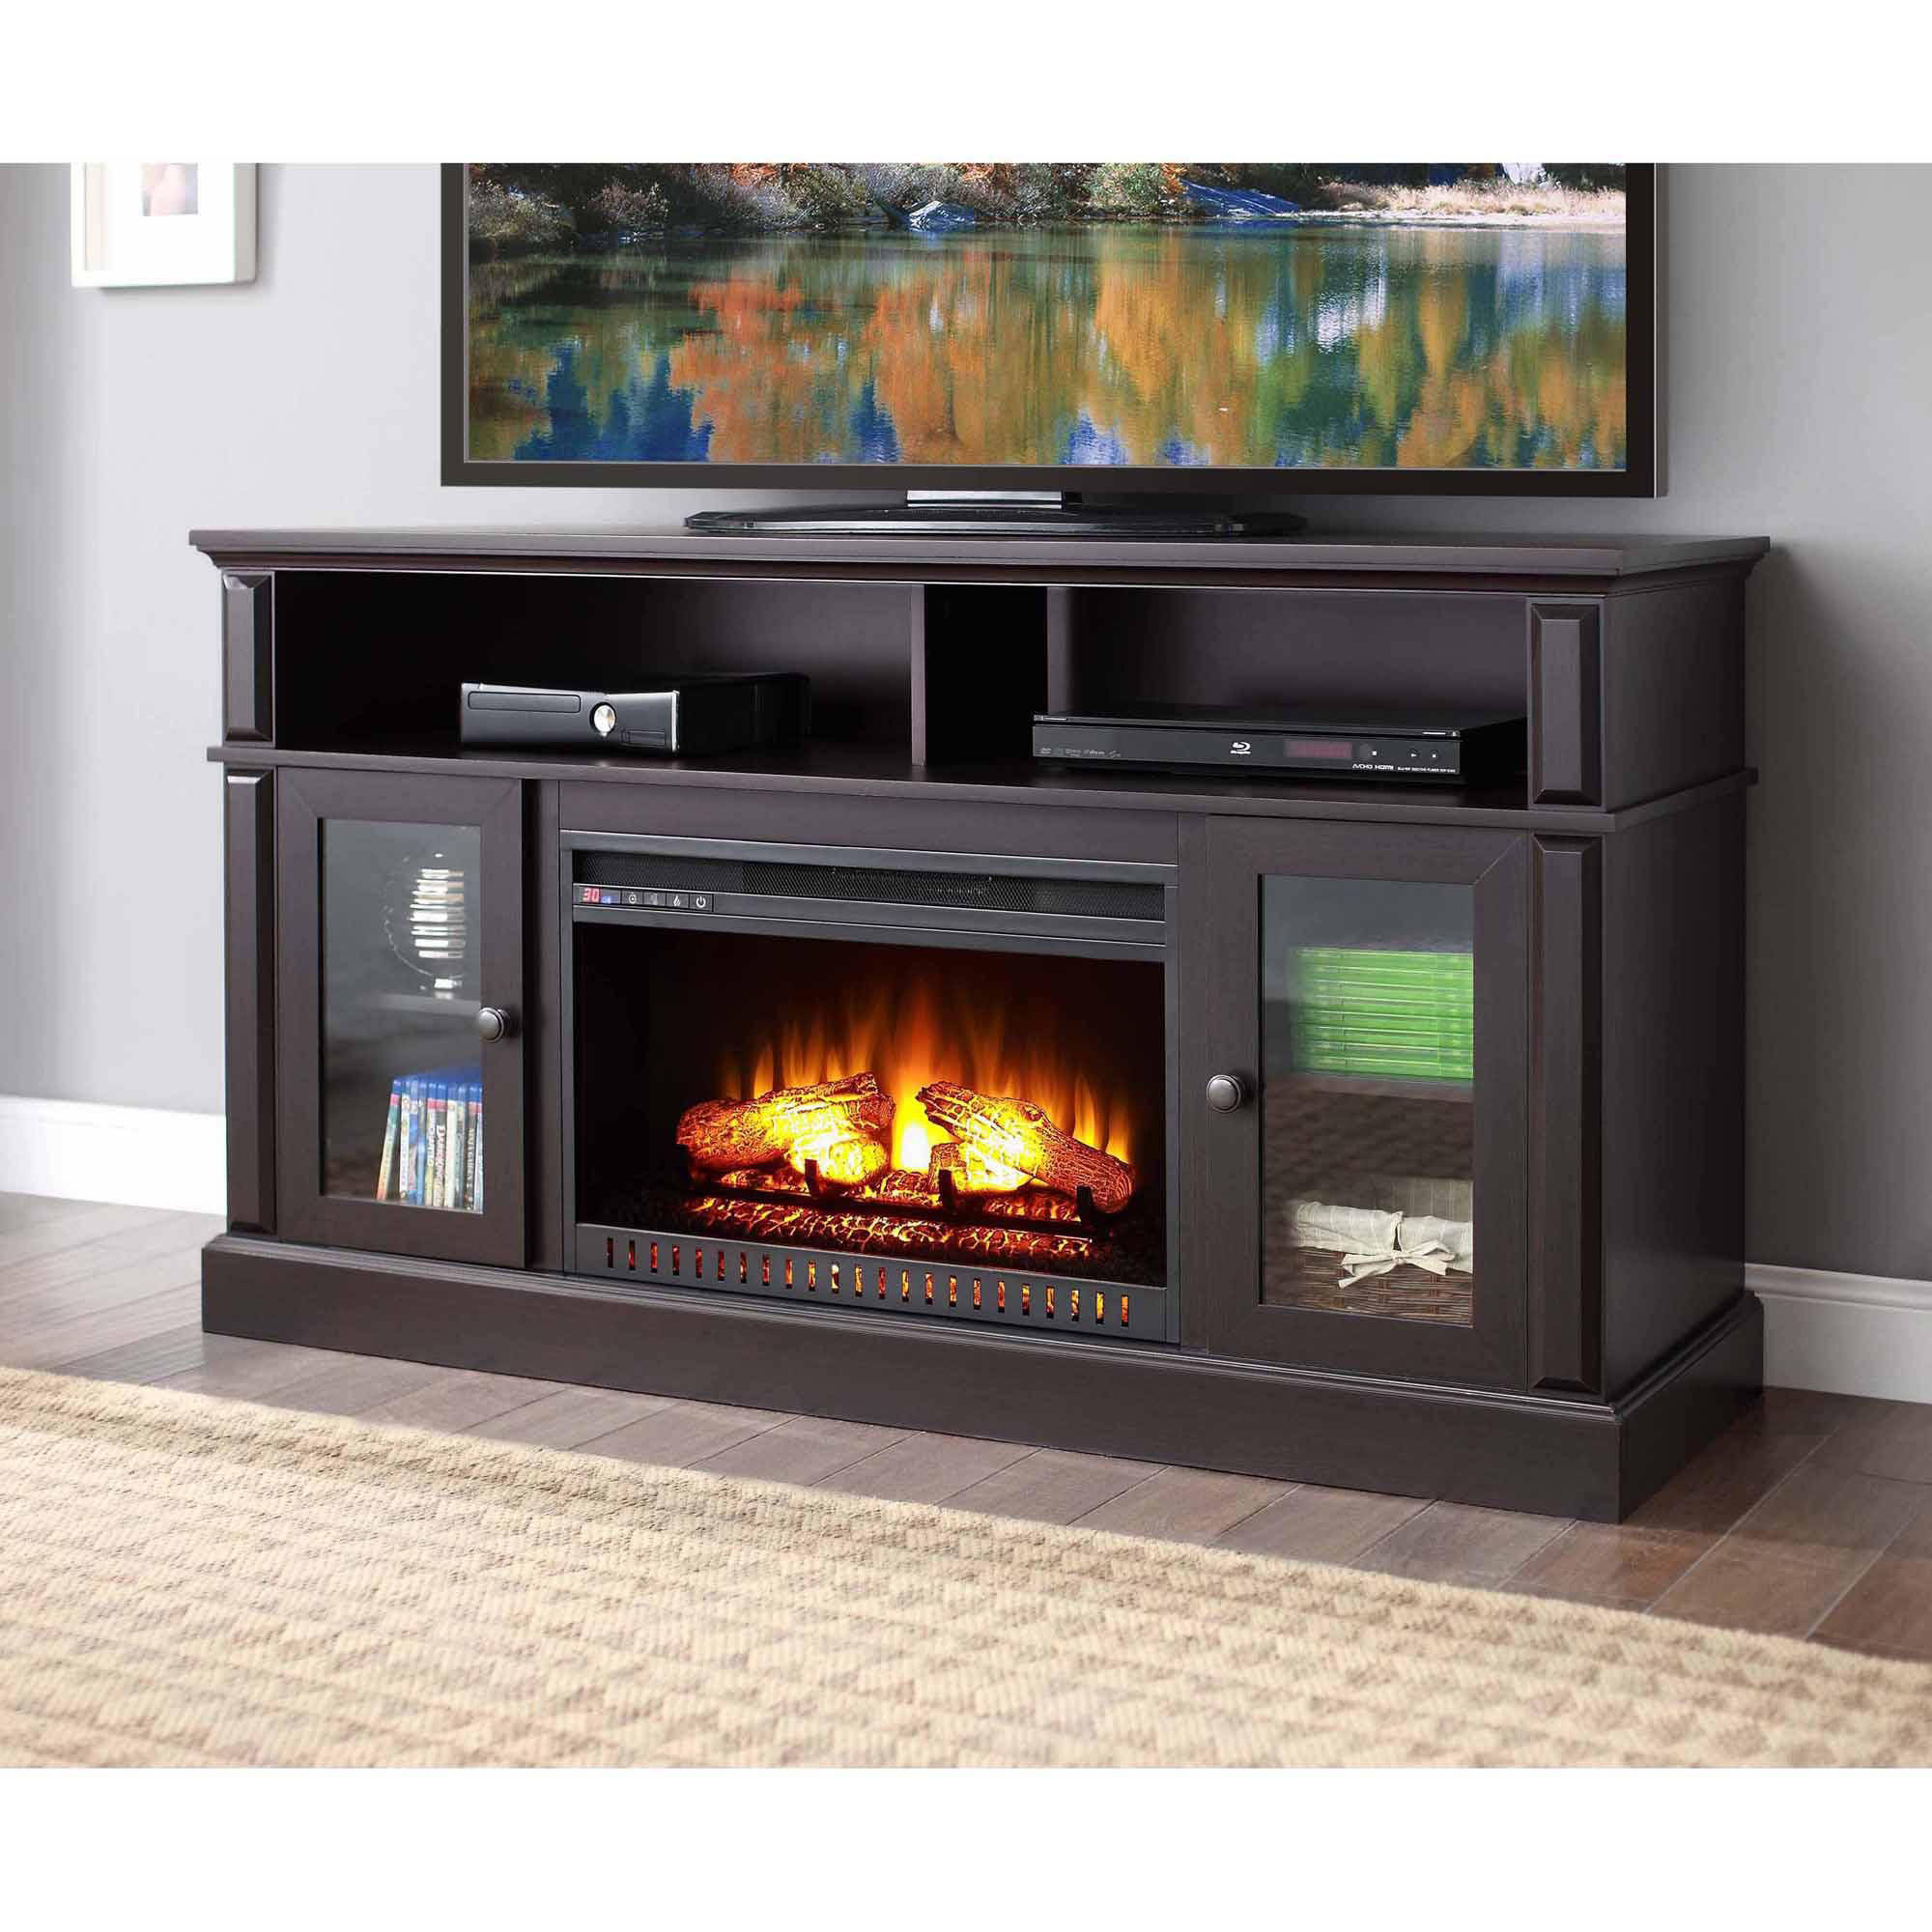 tv fireplace entertainment with stand home product w north shore cabinet wfireplace option lg